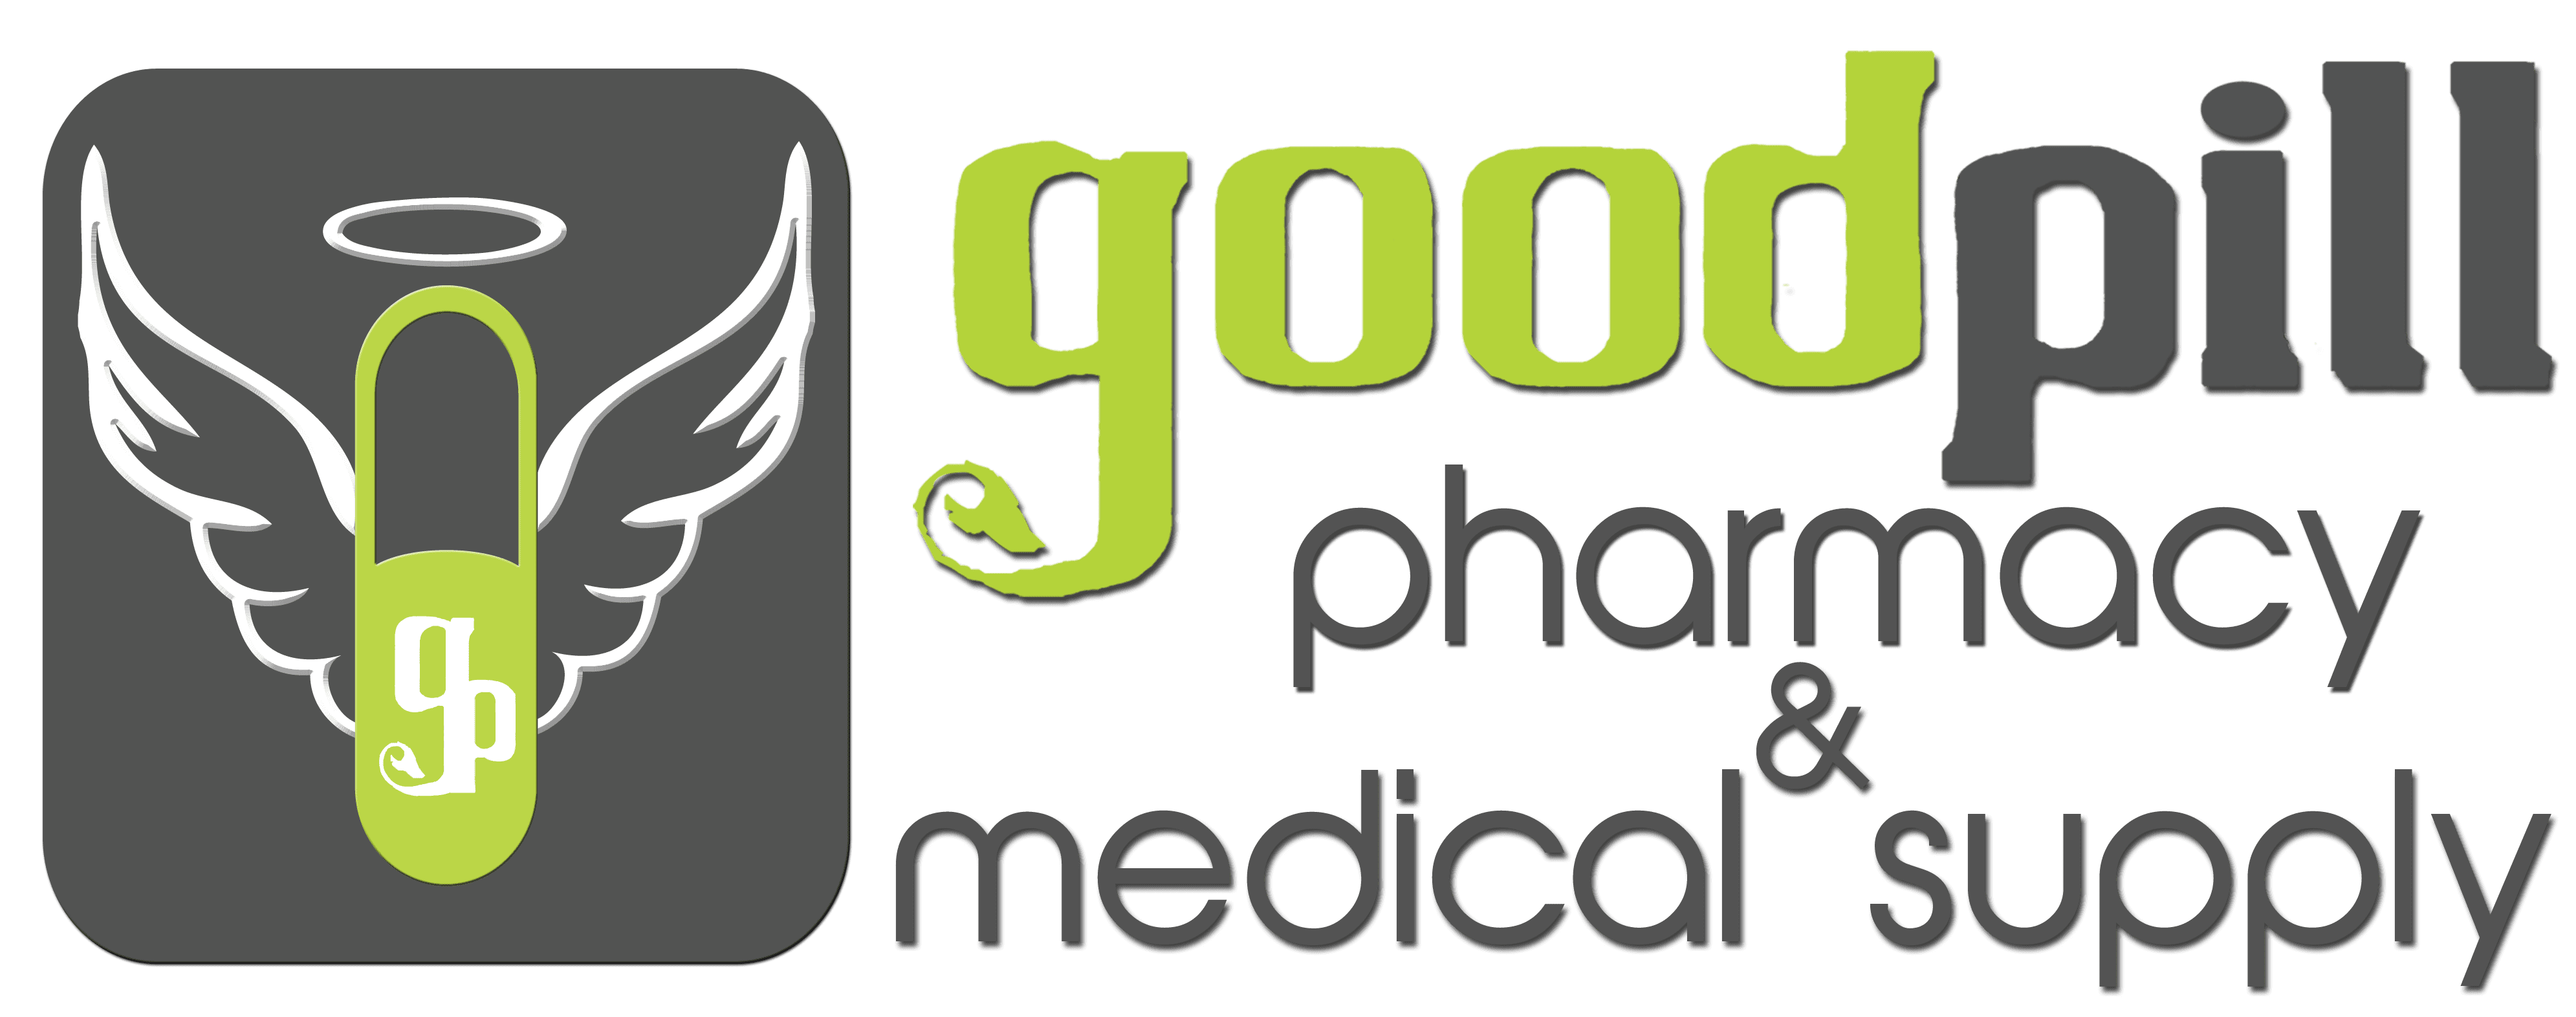 GoodPill Pharmacy & Medical Supply